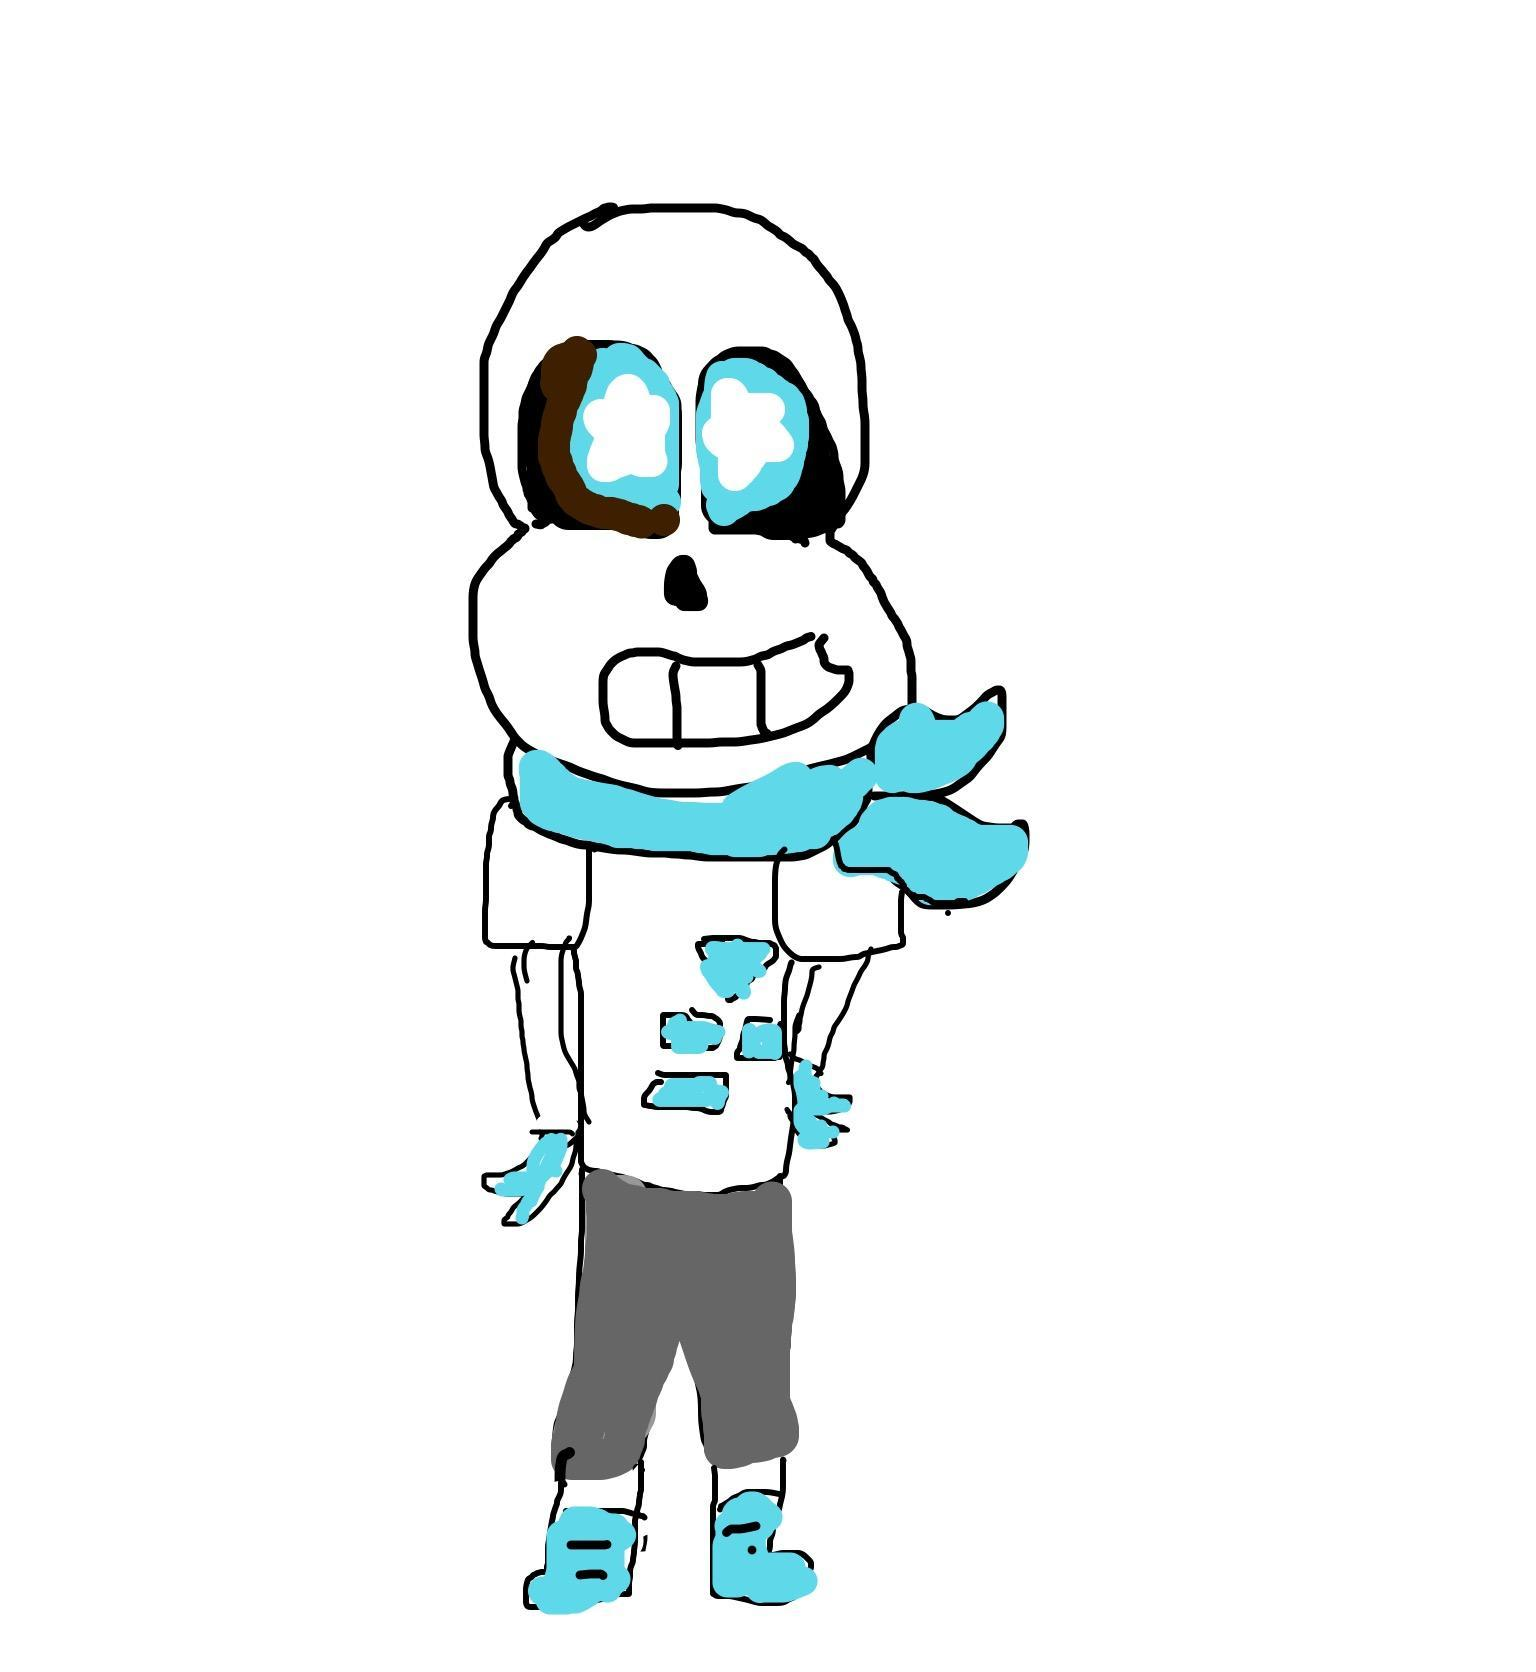 Okay, Okay... So what if BLUEBERRY sans asked you out?